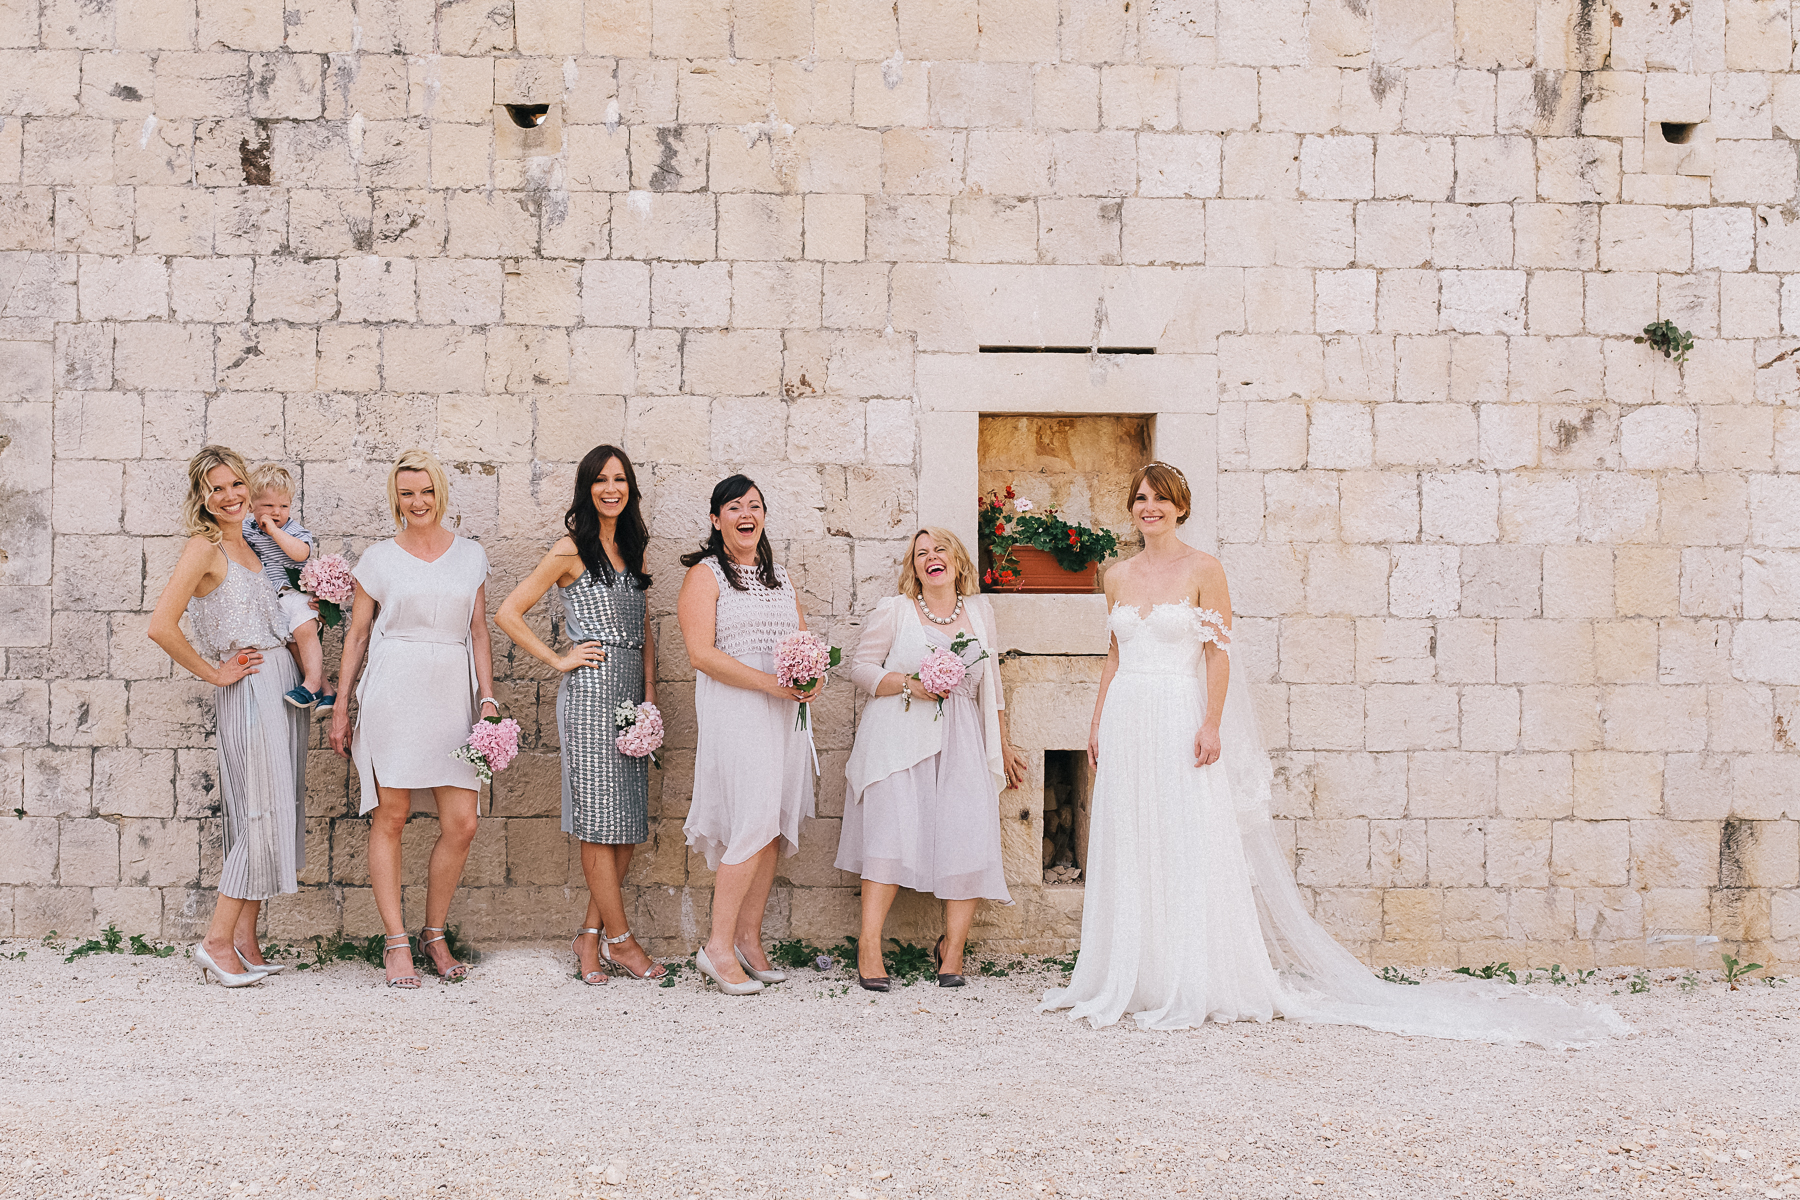 Vis-Croatia-Wedding-68